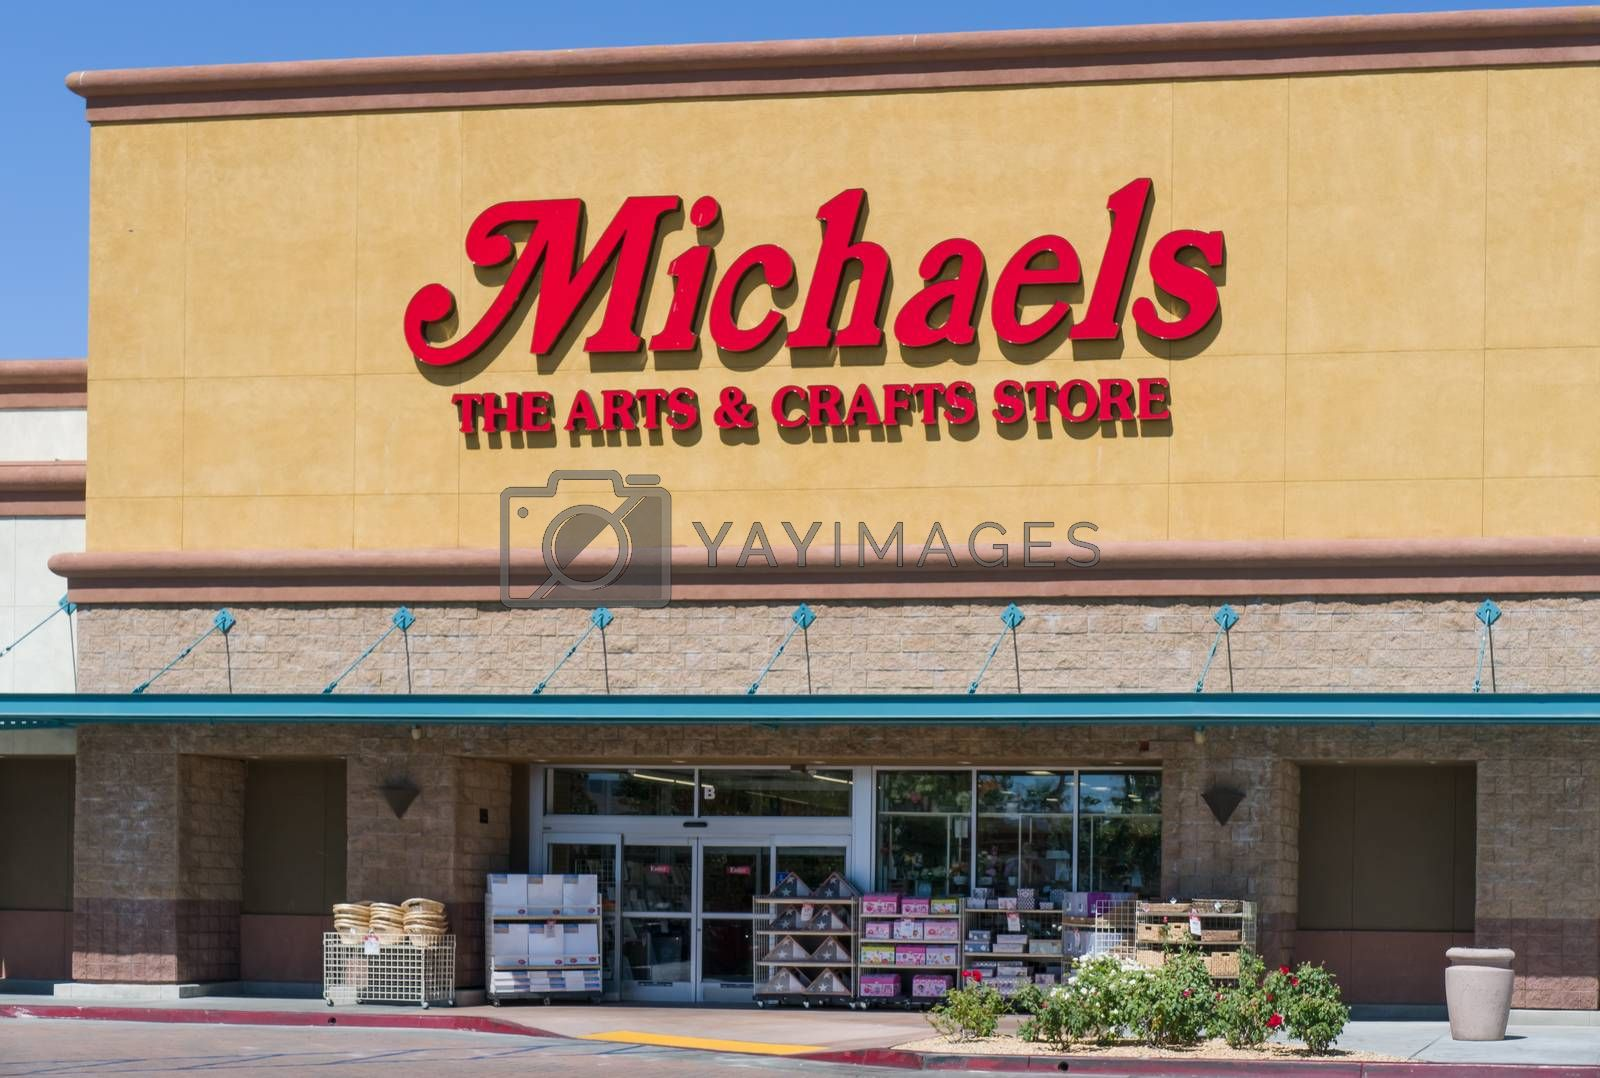 PALMDALE, CA/USA - APRIL 23, 2016: Michaels retail store exterior and sign. Michaels Stores, Inc. is a North American arts and crafts retail chain.